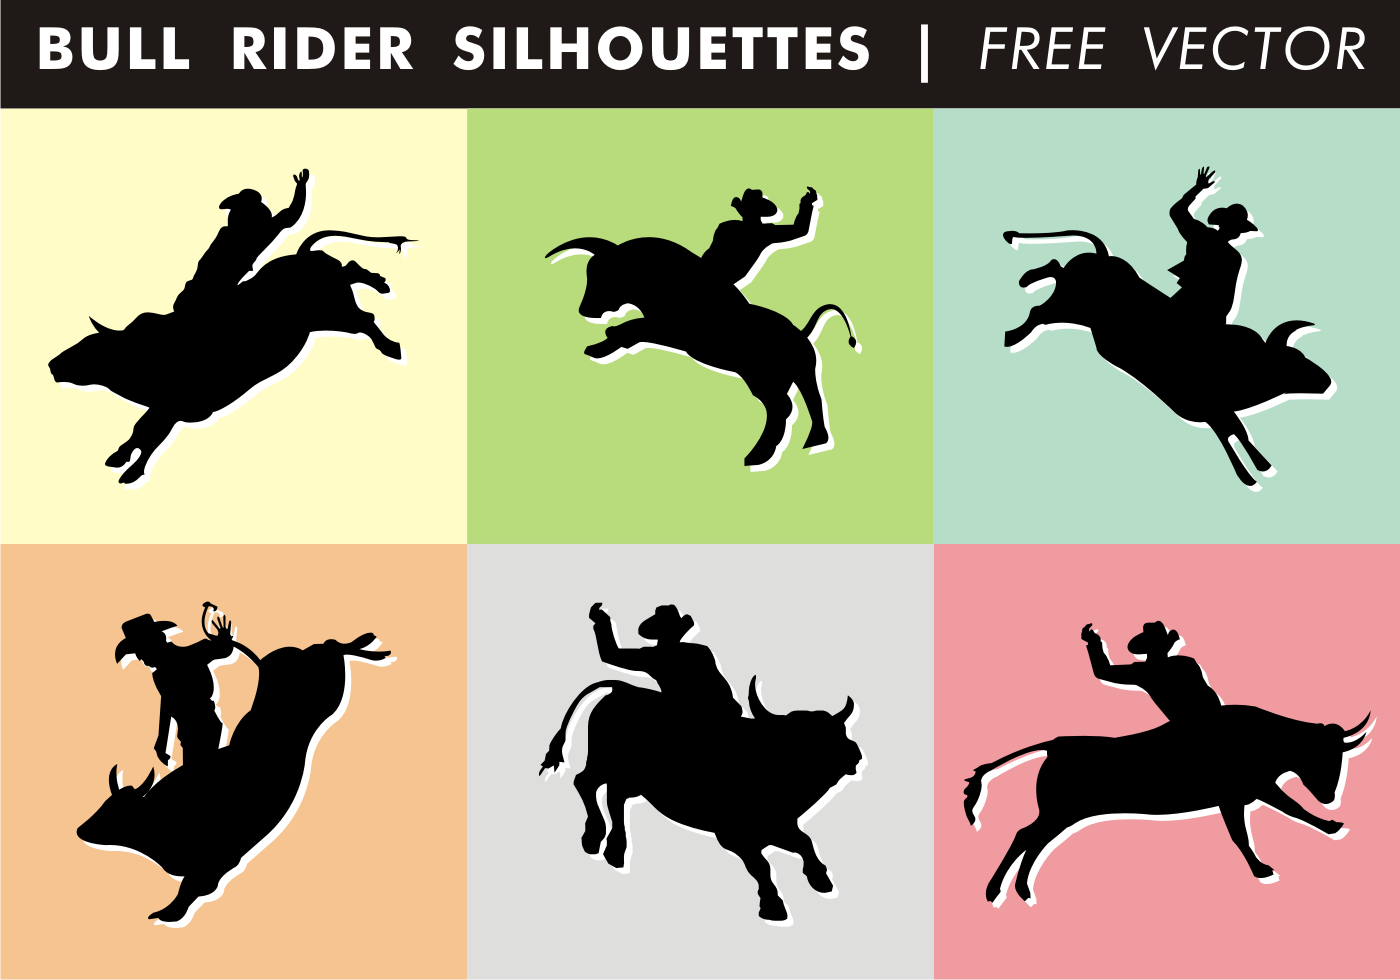 Bull Rider Silhouette Free Vector 100756 - Download Free ...